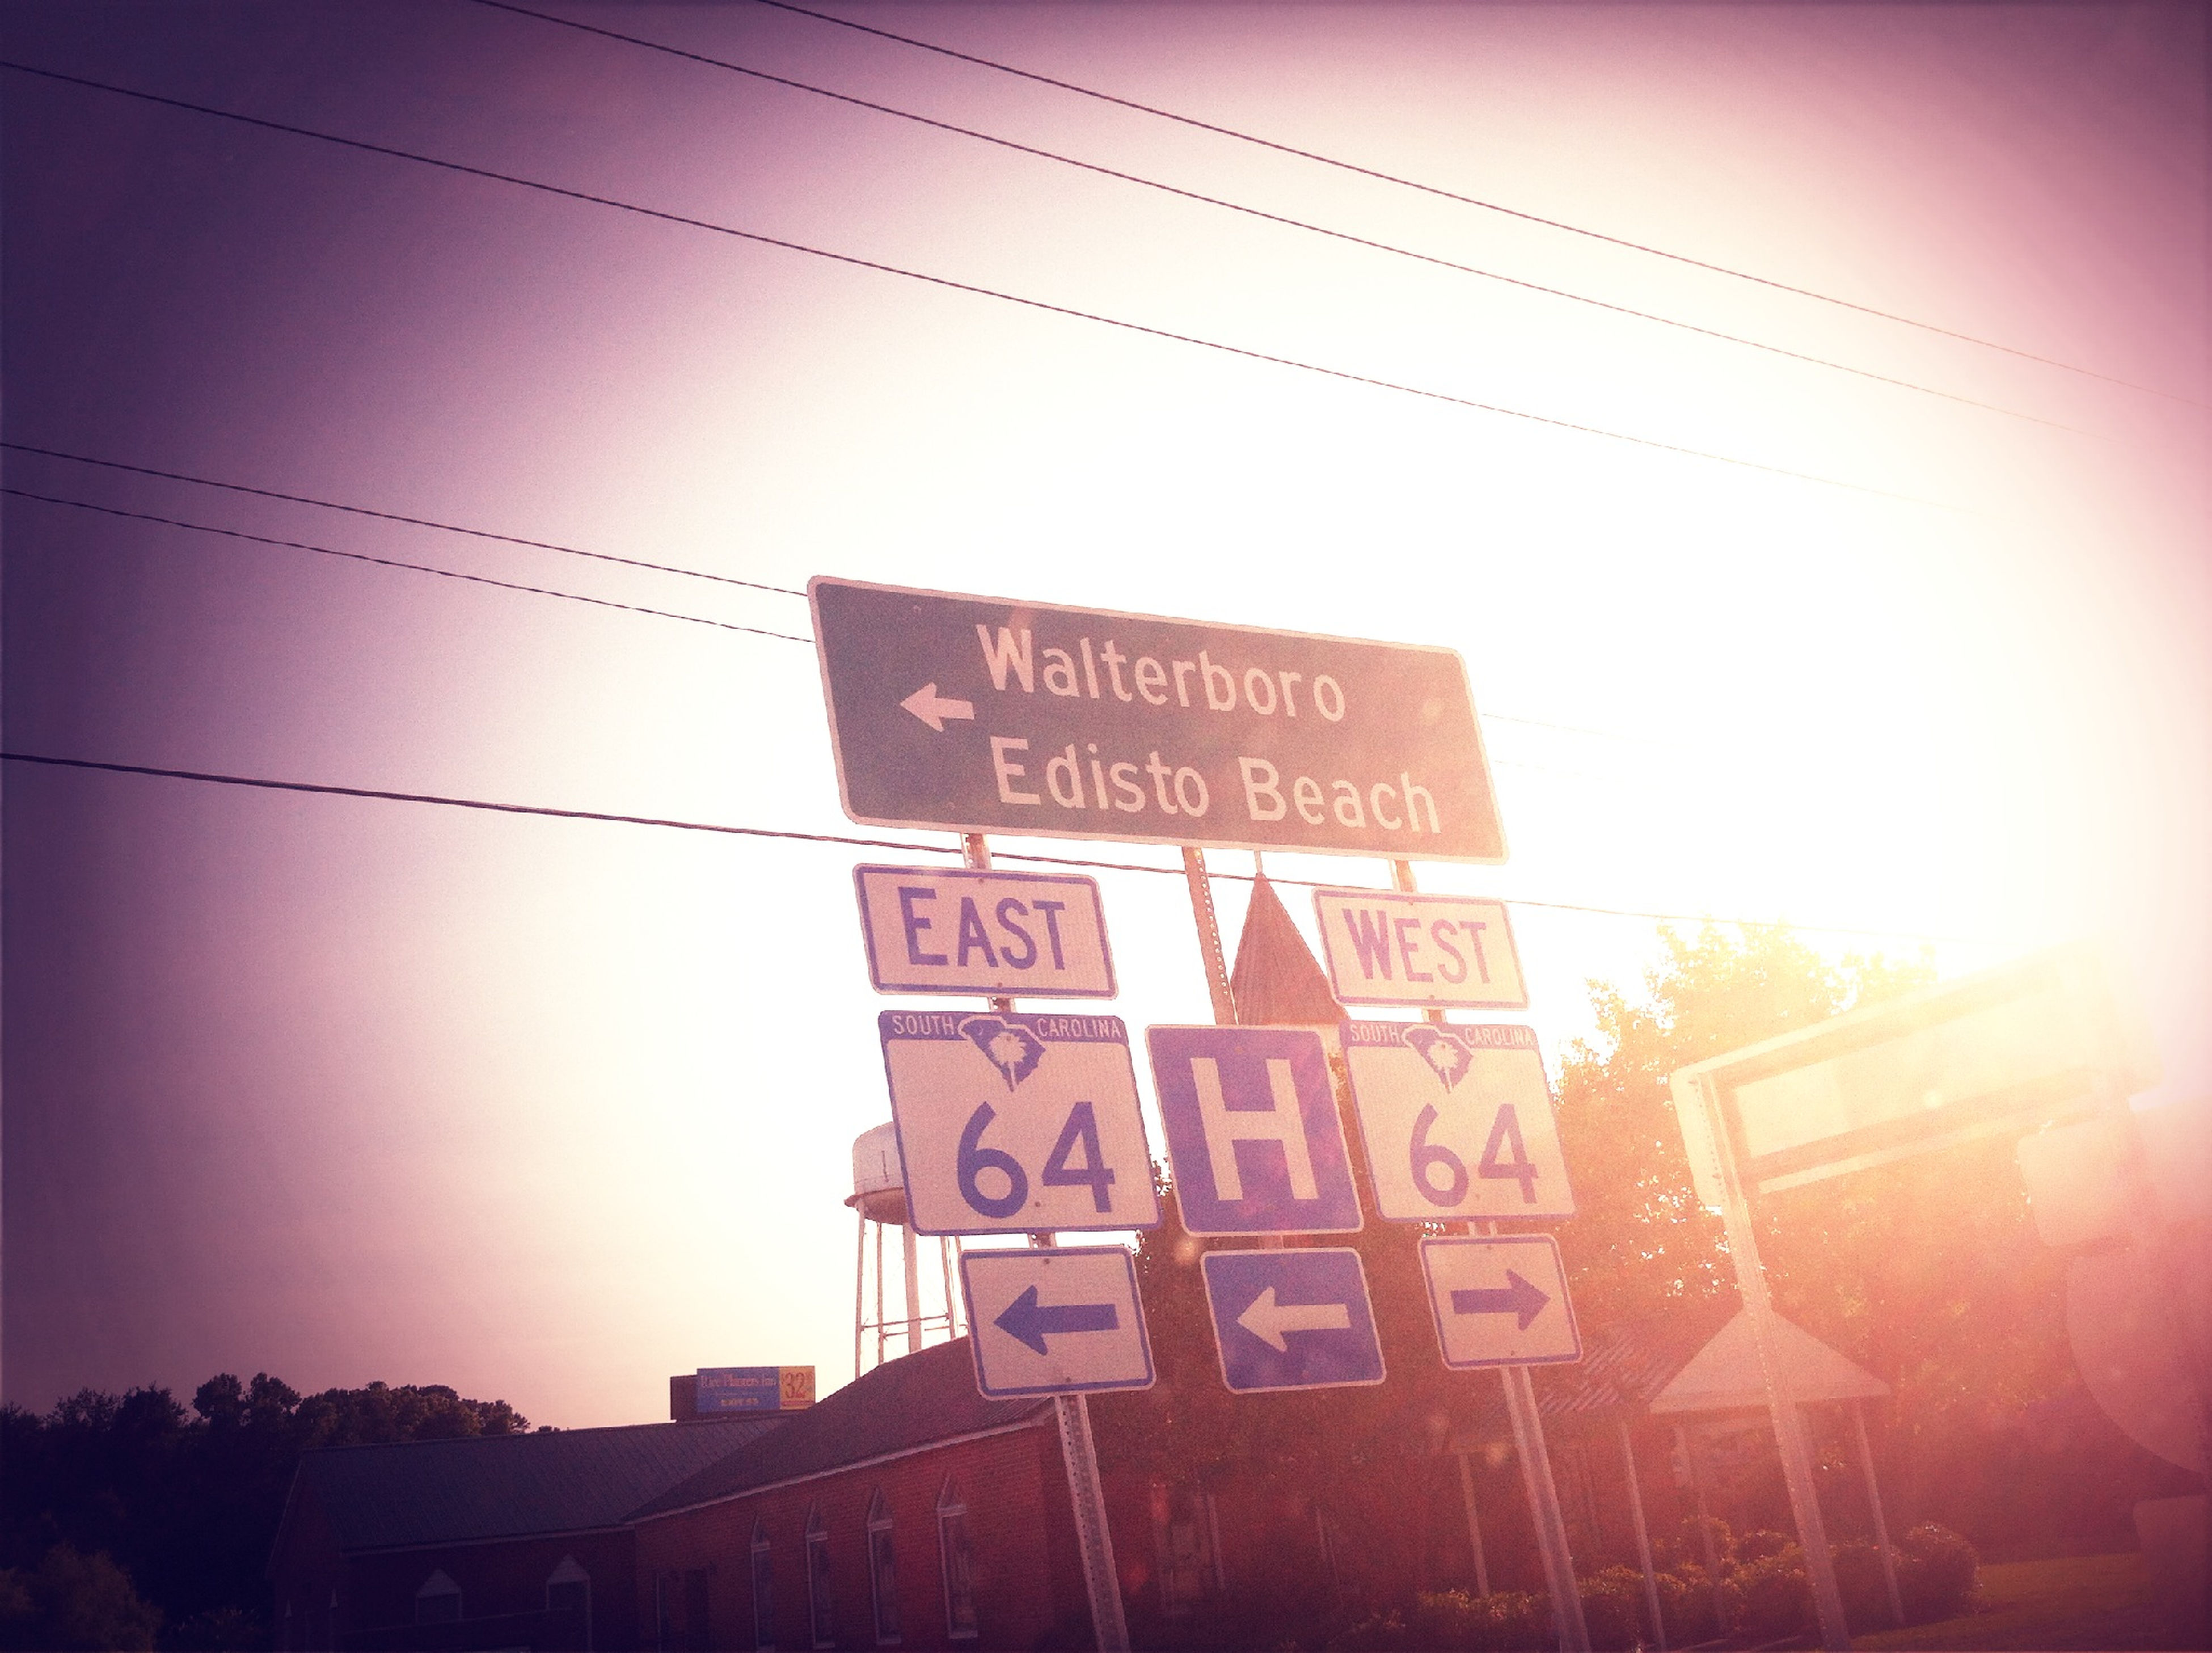 text, western script, communication, low angle view, information sign, sunset, guidance, information, non-western script, sign, capital letter, sky, clear sky, road sign, arrow symbol, sun, outdoors, no people, sunlight, directional sign